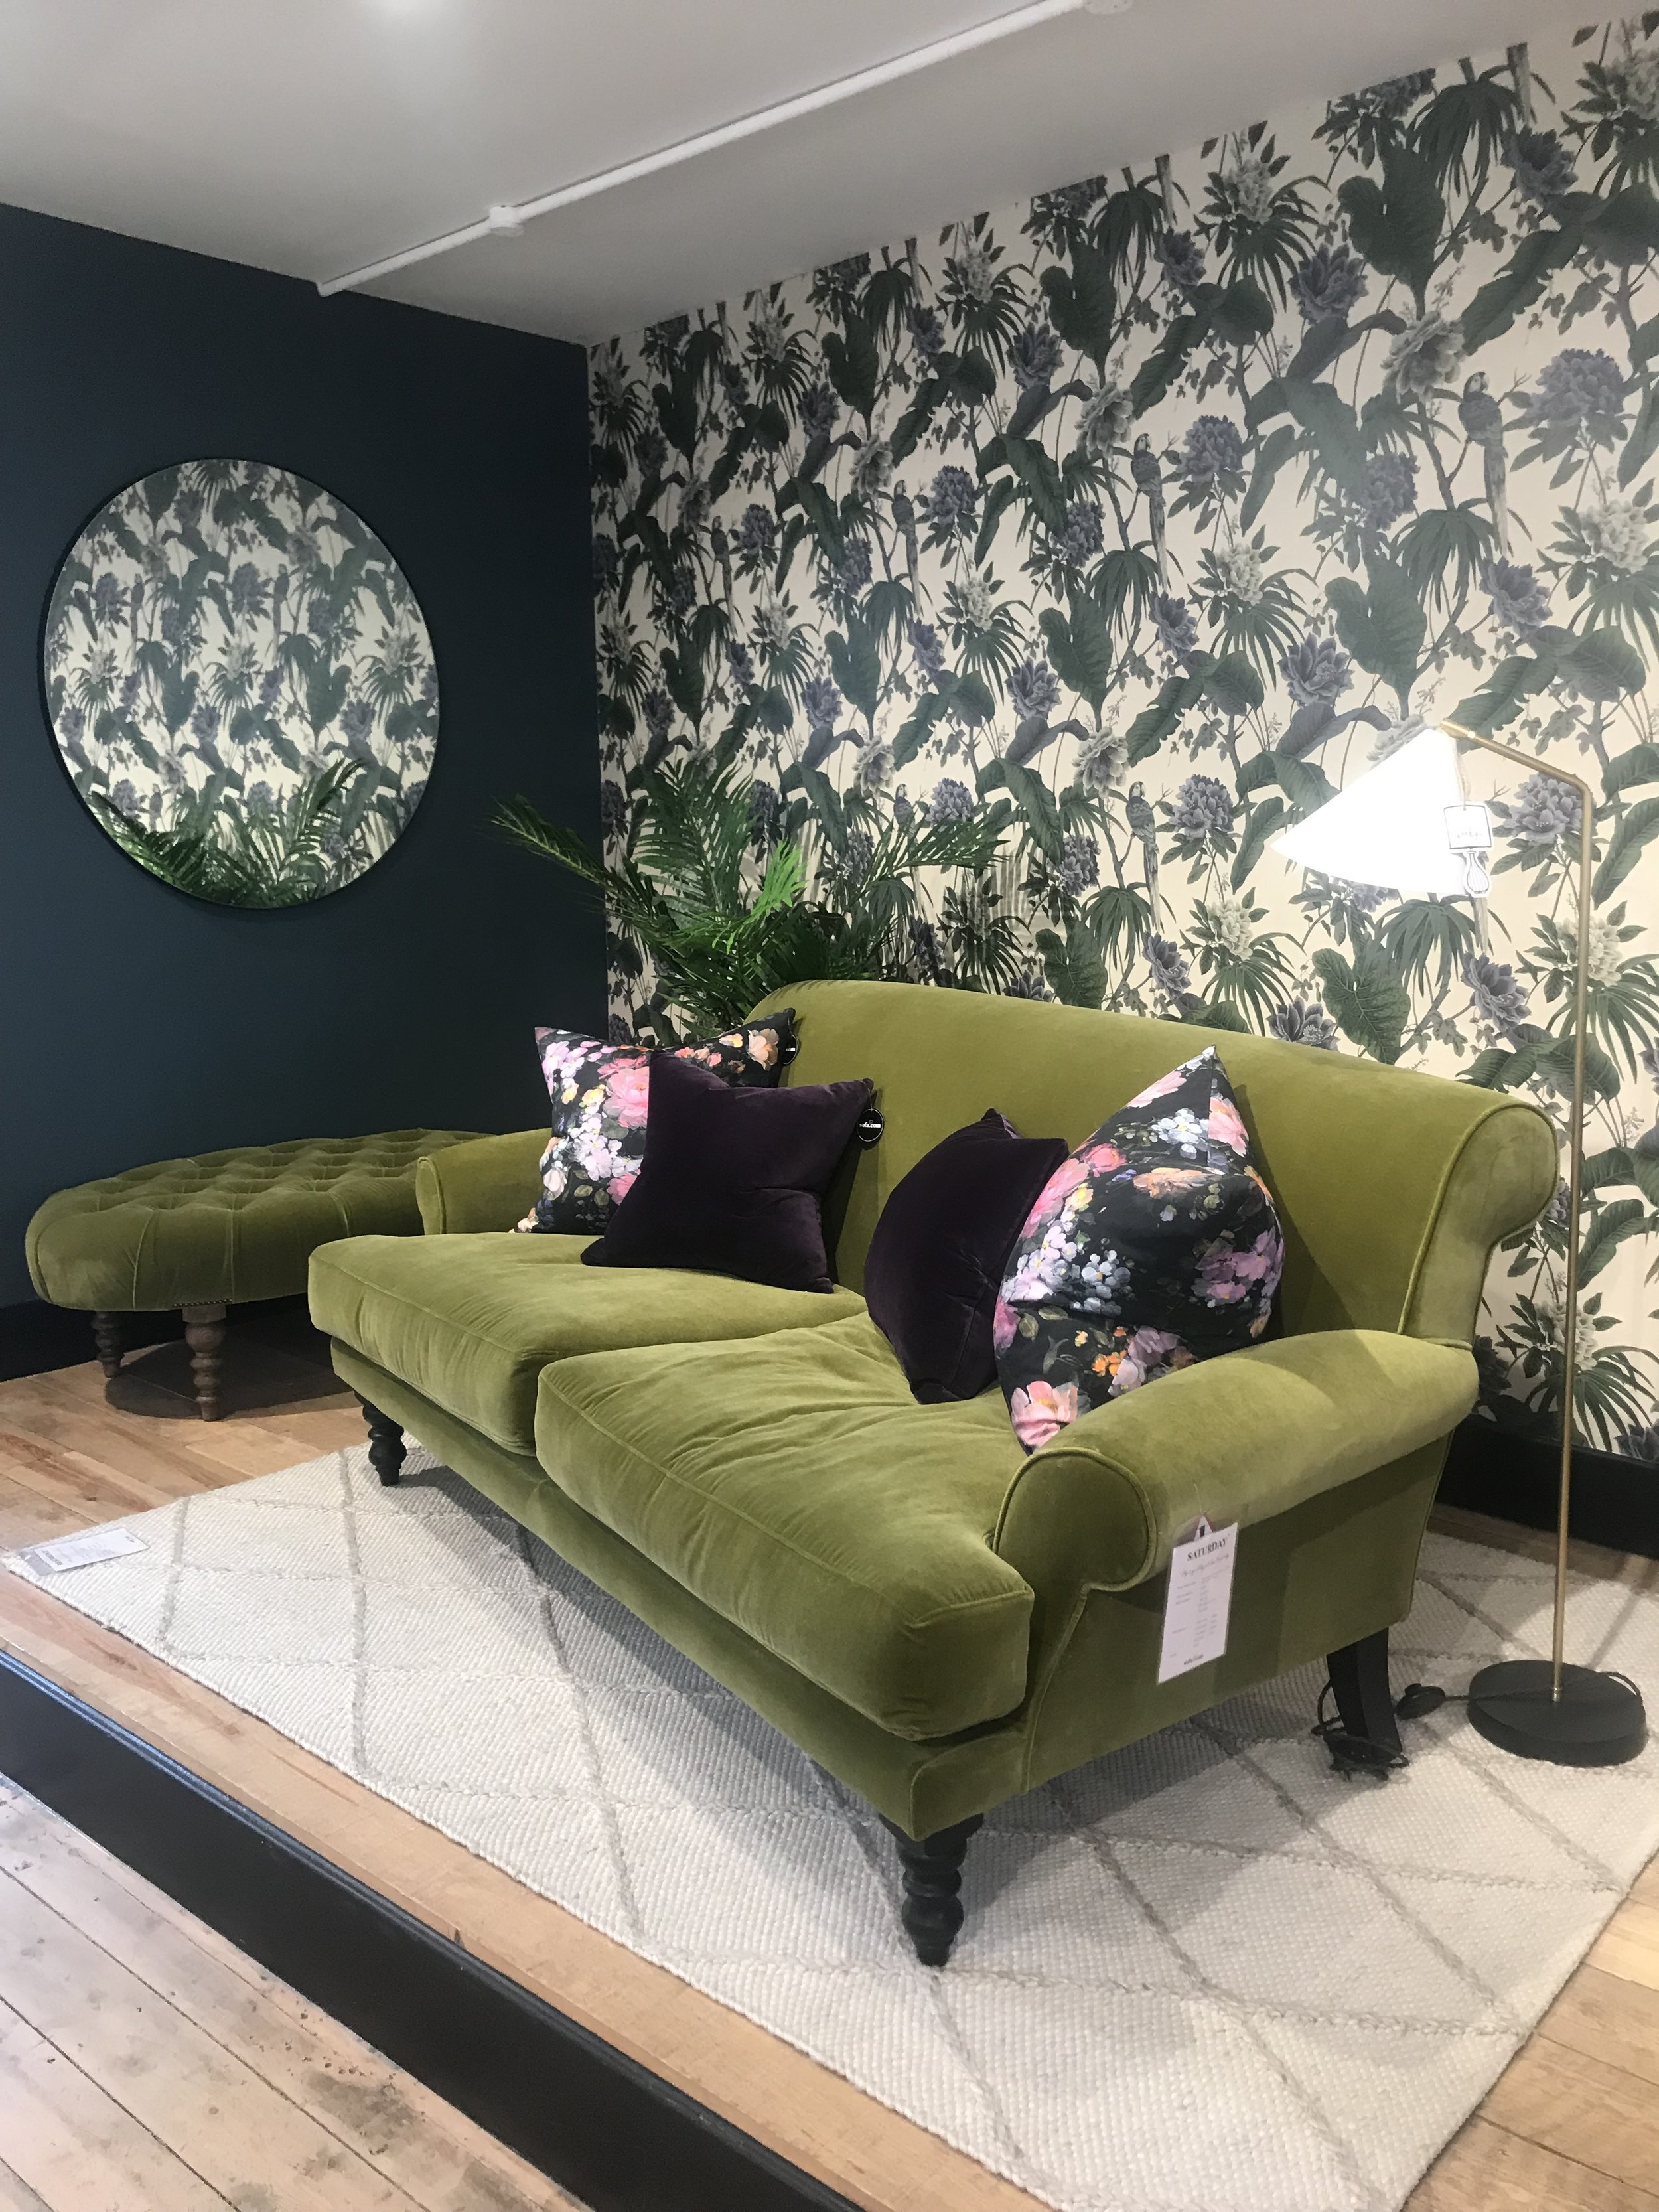 Adored this  Saturday Sofa in Olive